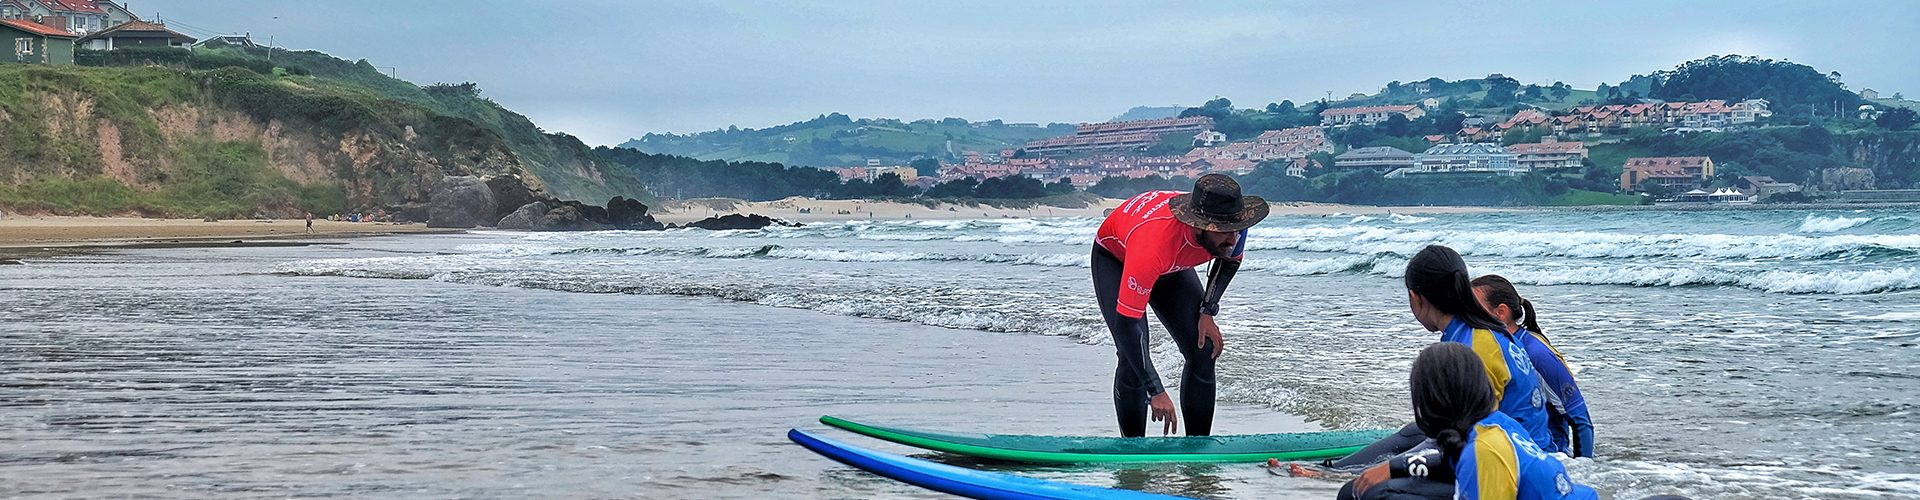 surfing practice in Spain